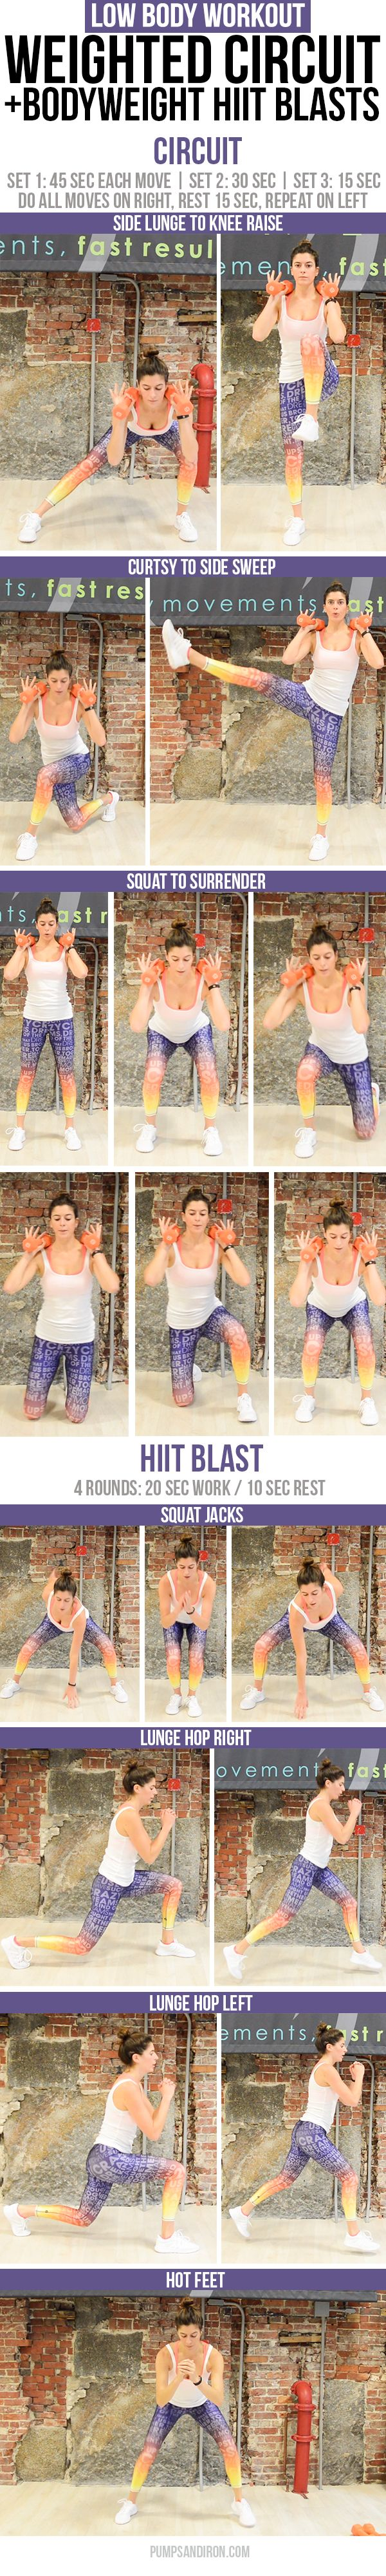 Low Body Circuit Workout with HIIT Blasts - you'll just need a set of weights and 15 minutes! (video included if you want to follow along at home)